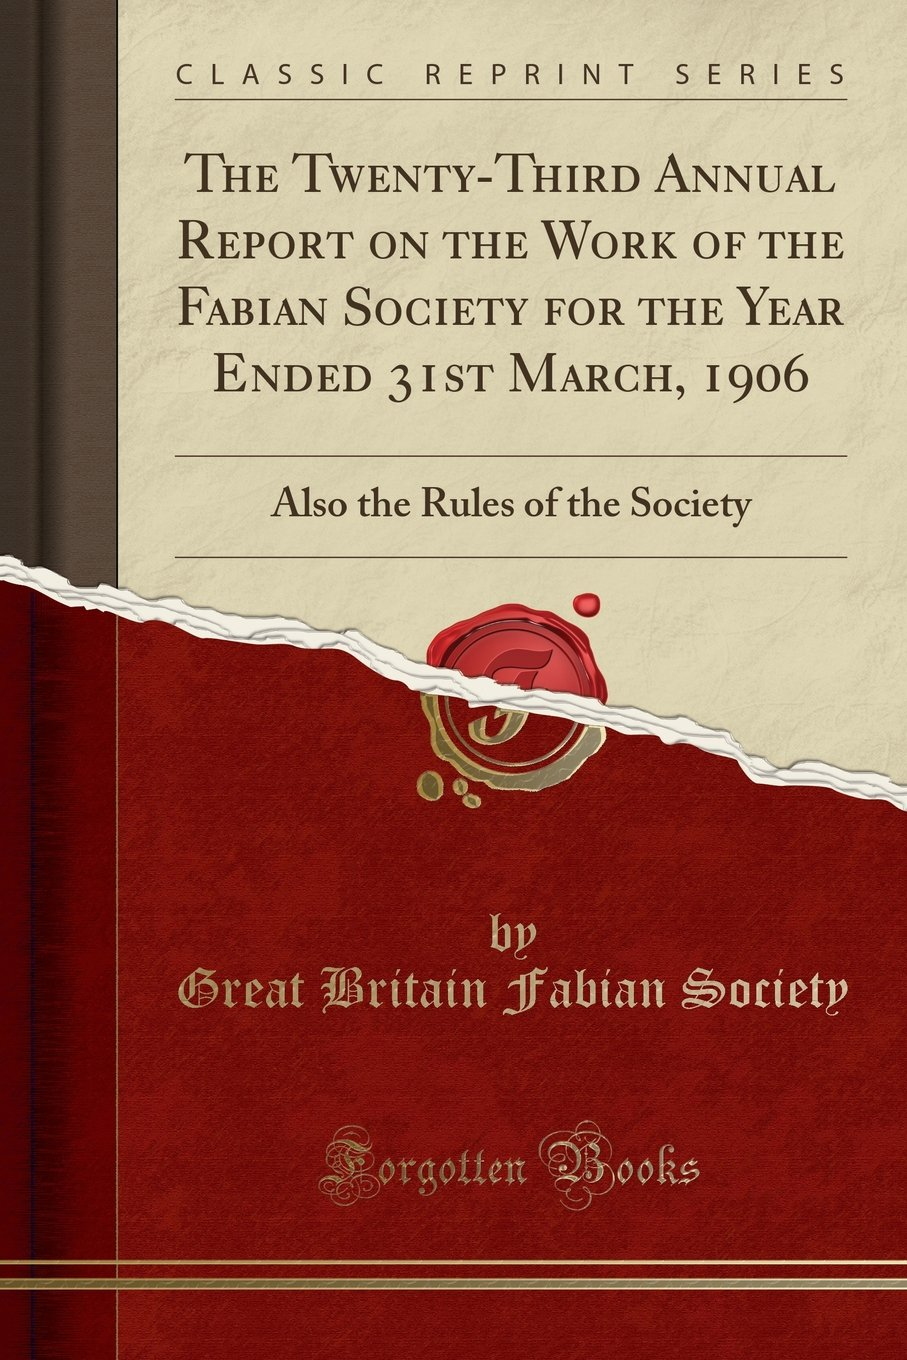 Download The Twenty-Third Annual Report on the Work of the Fabian Society for the Year Ended 31st March, 1906: Also the Rules of the Society (Classic Reprint) pdf epub